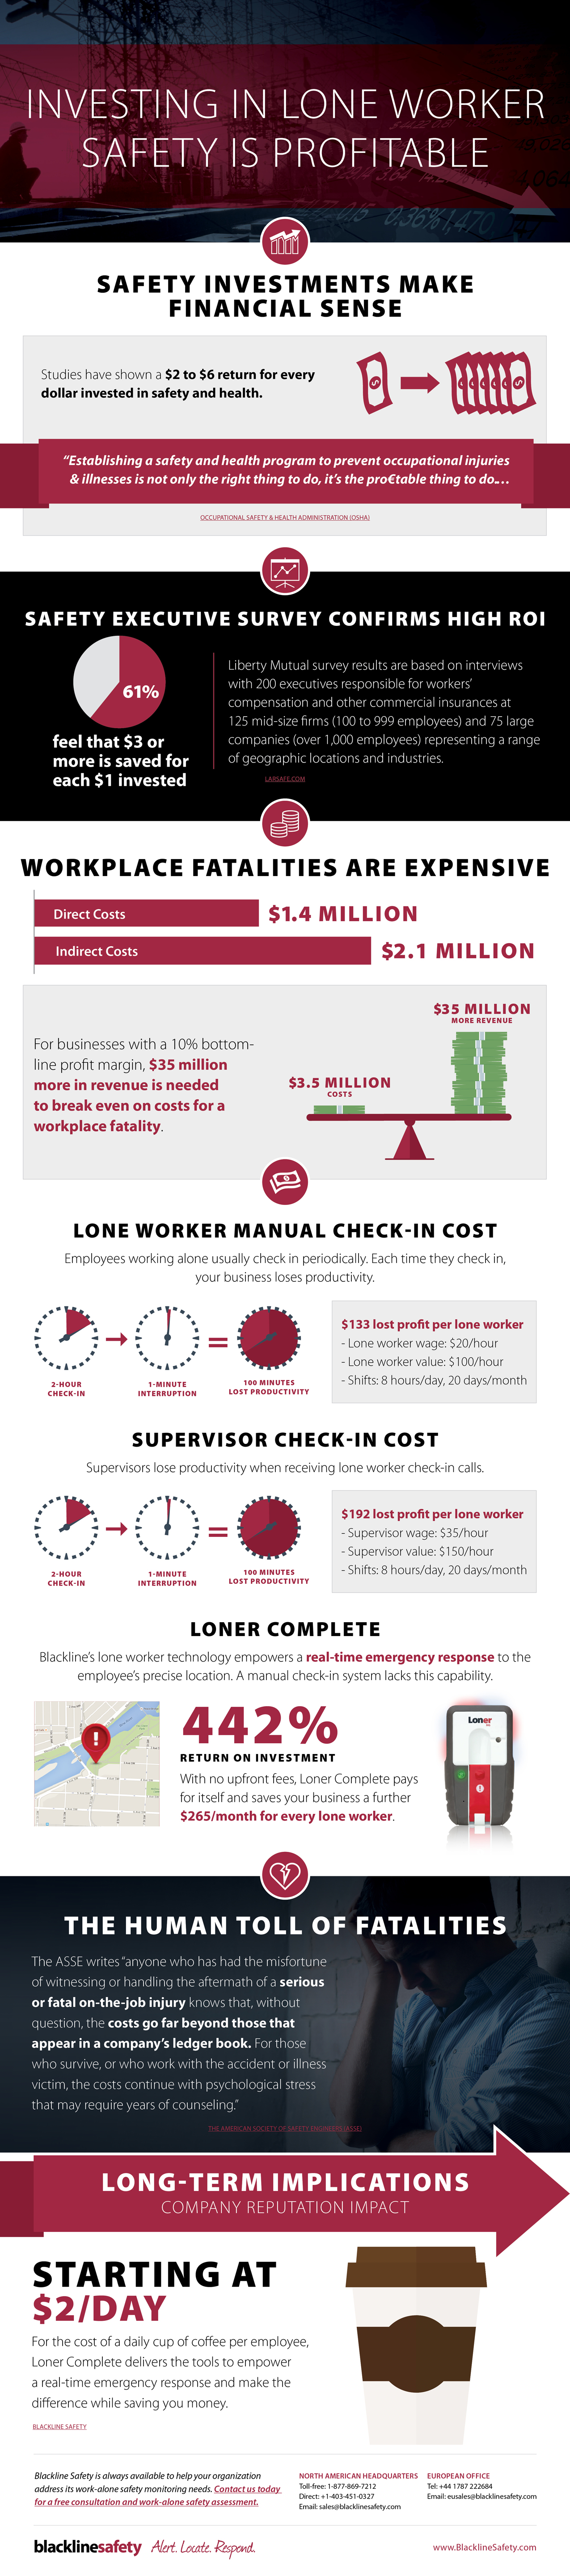 Lone worker safety — the profitable thing to do is invest.= in your must valuable asset, your employees.